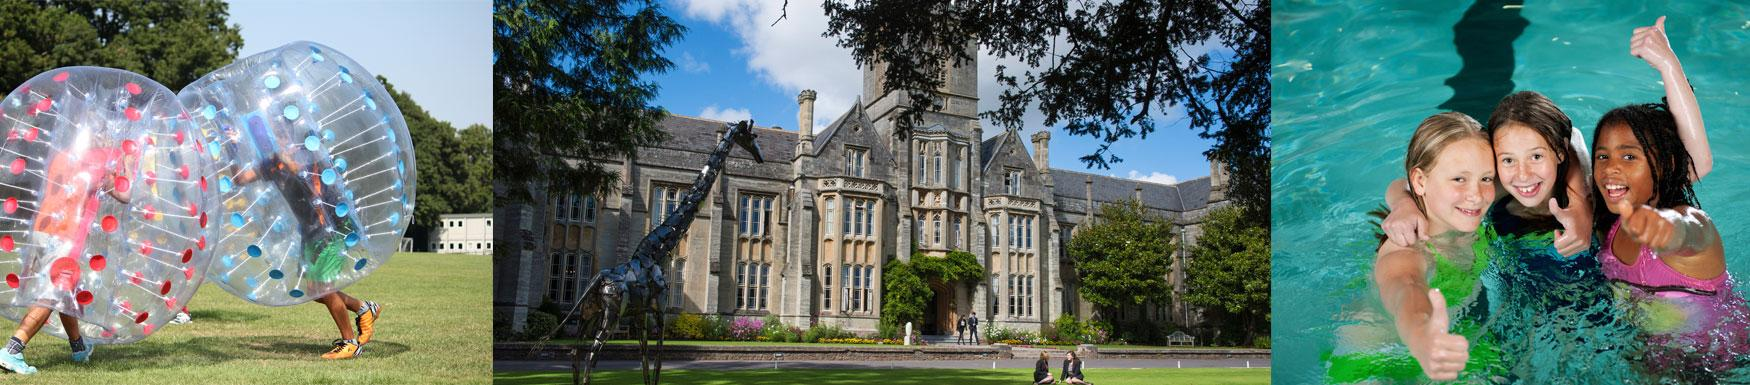 School holiday camp activities for all ages from 4-14 year olds at Queen's College, Taunton